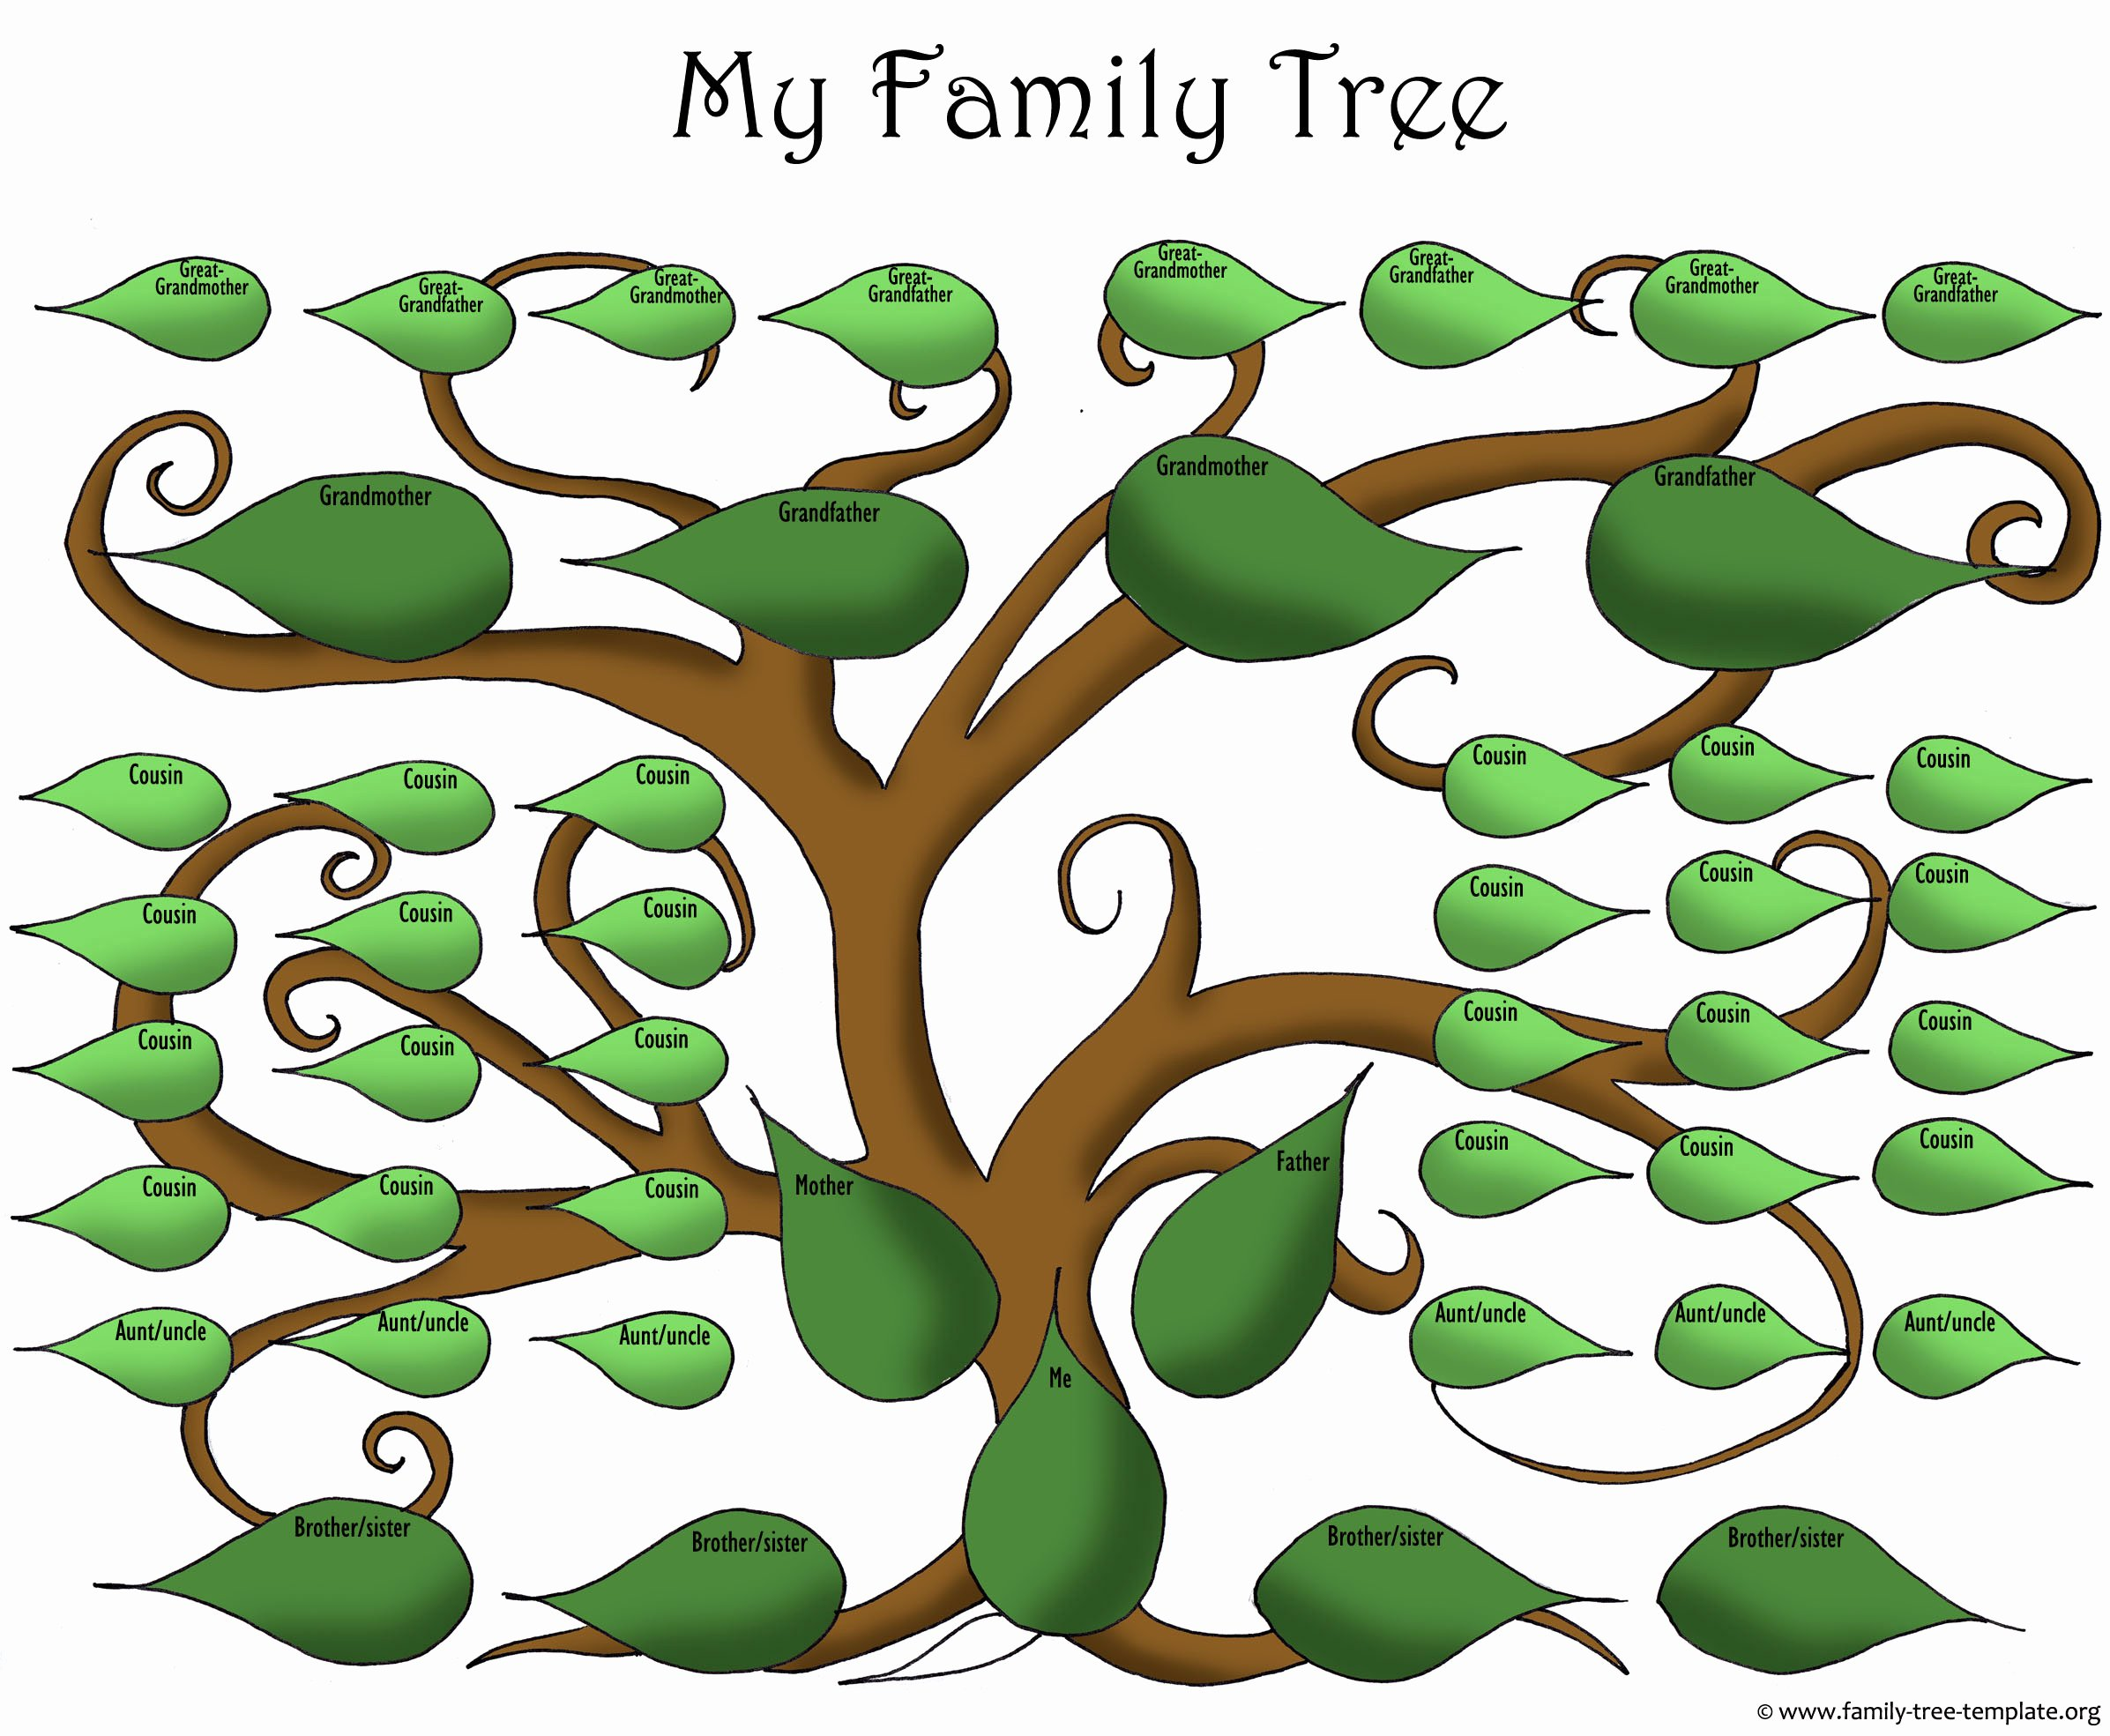 Blank Family Tree Chart Lovely A Printable Blank Family Tree to Make Your Kids Genealogy